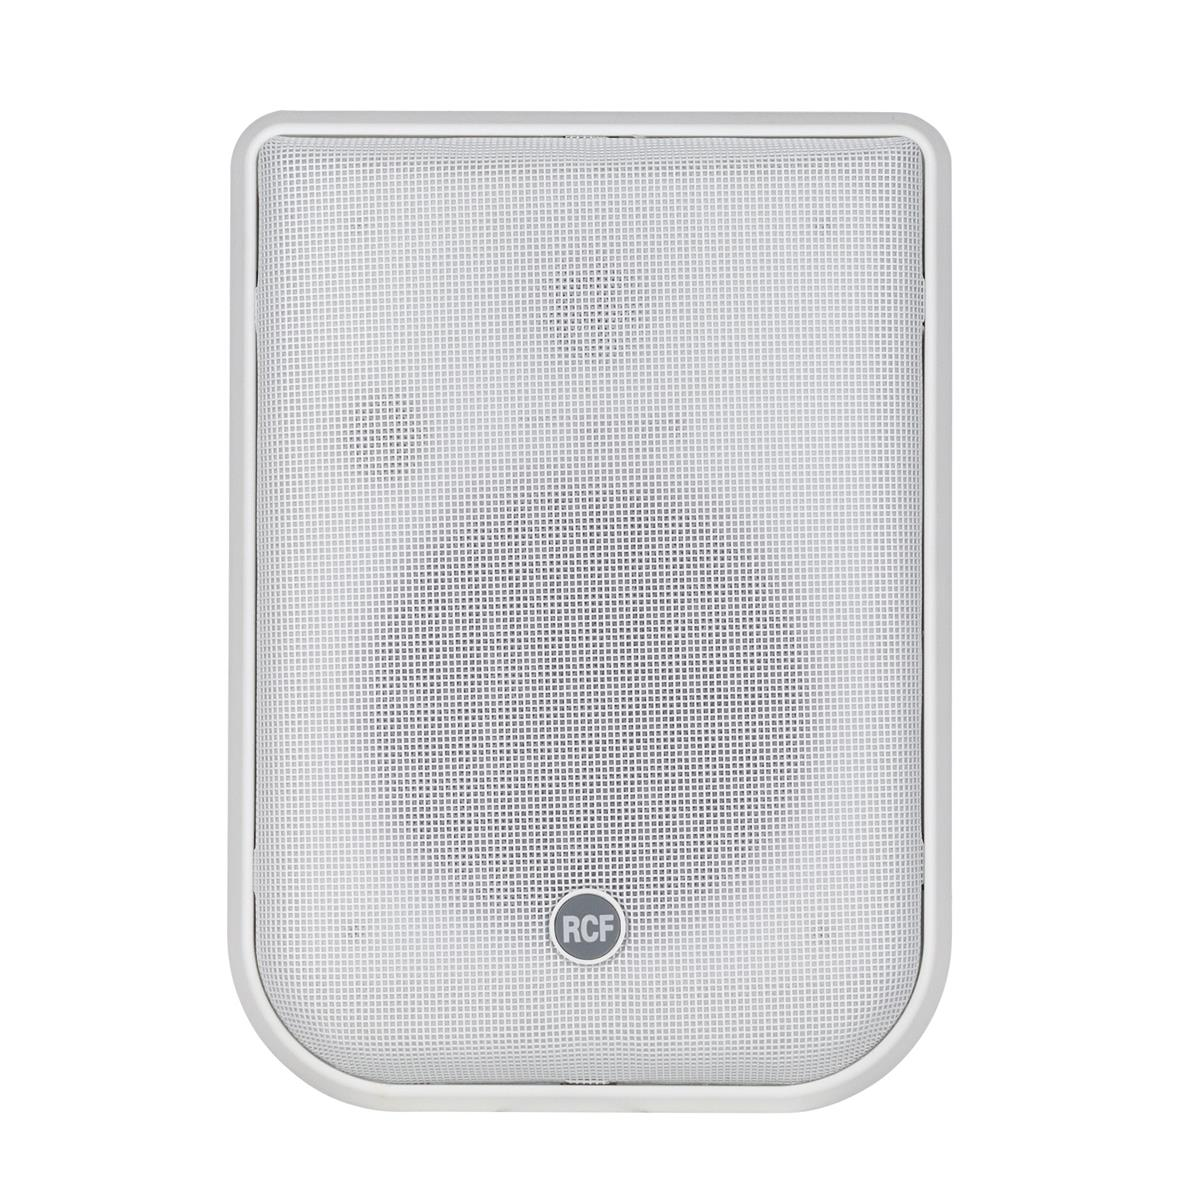 RCF Constant directivity Monitor Speaker White for flush mou